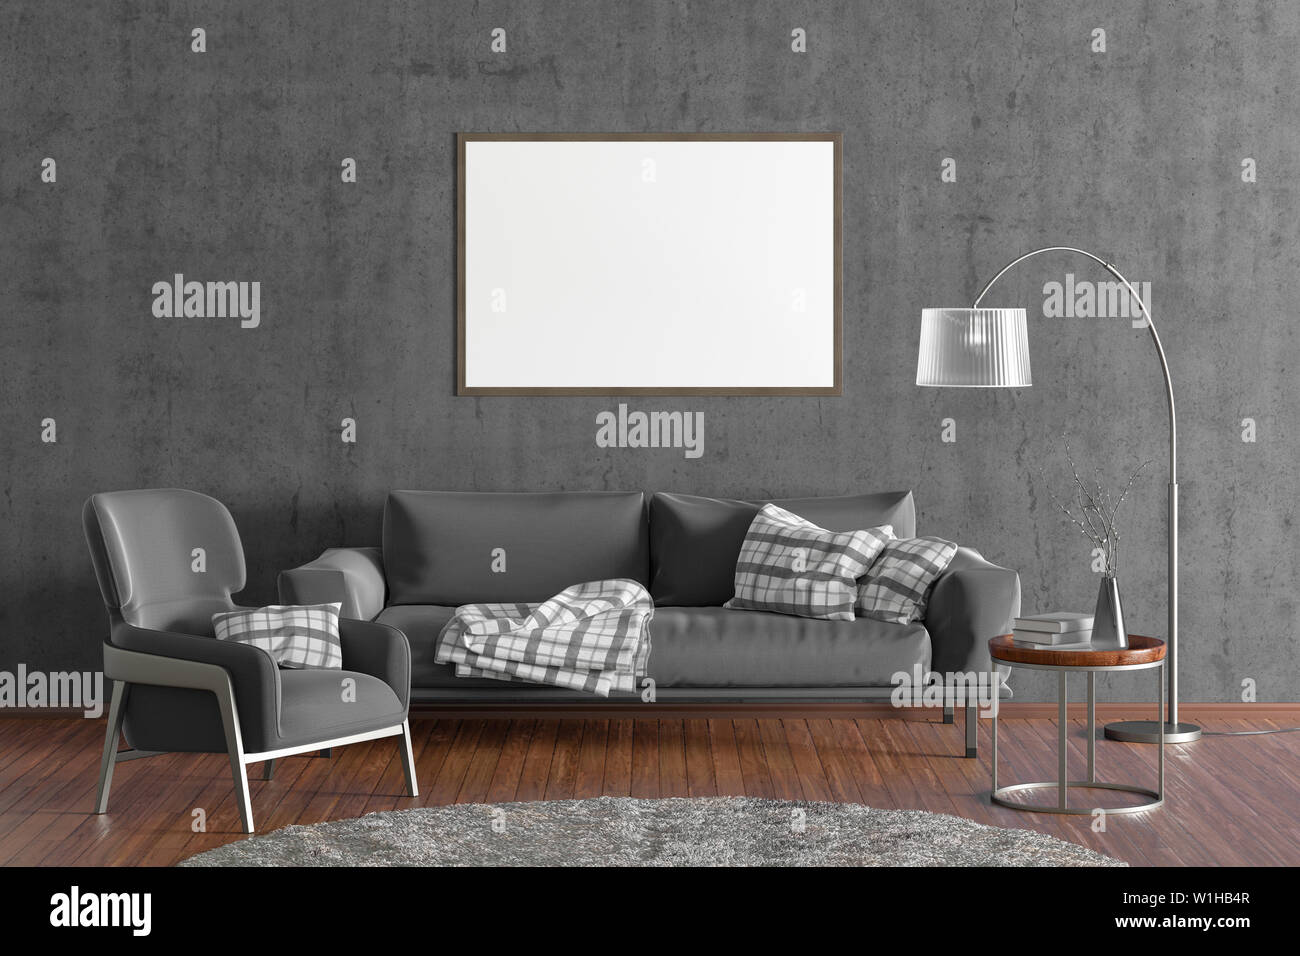 Horizontal Blank Poster On Gray Concrete Wall In Interior Of